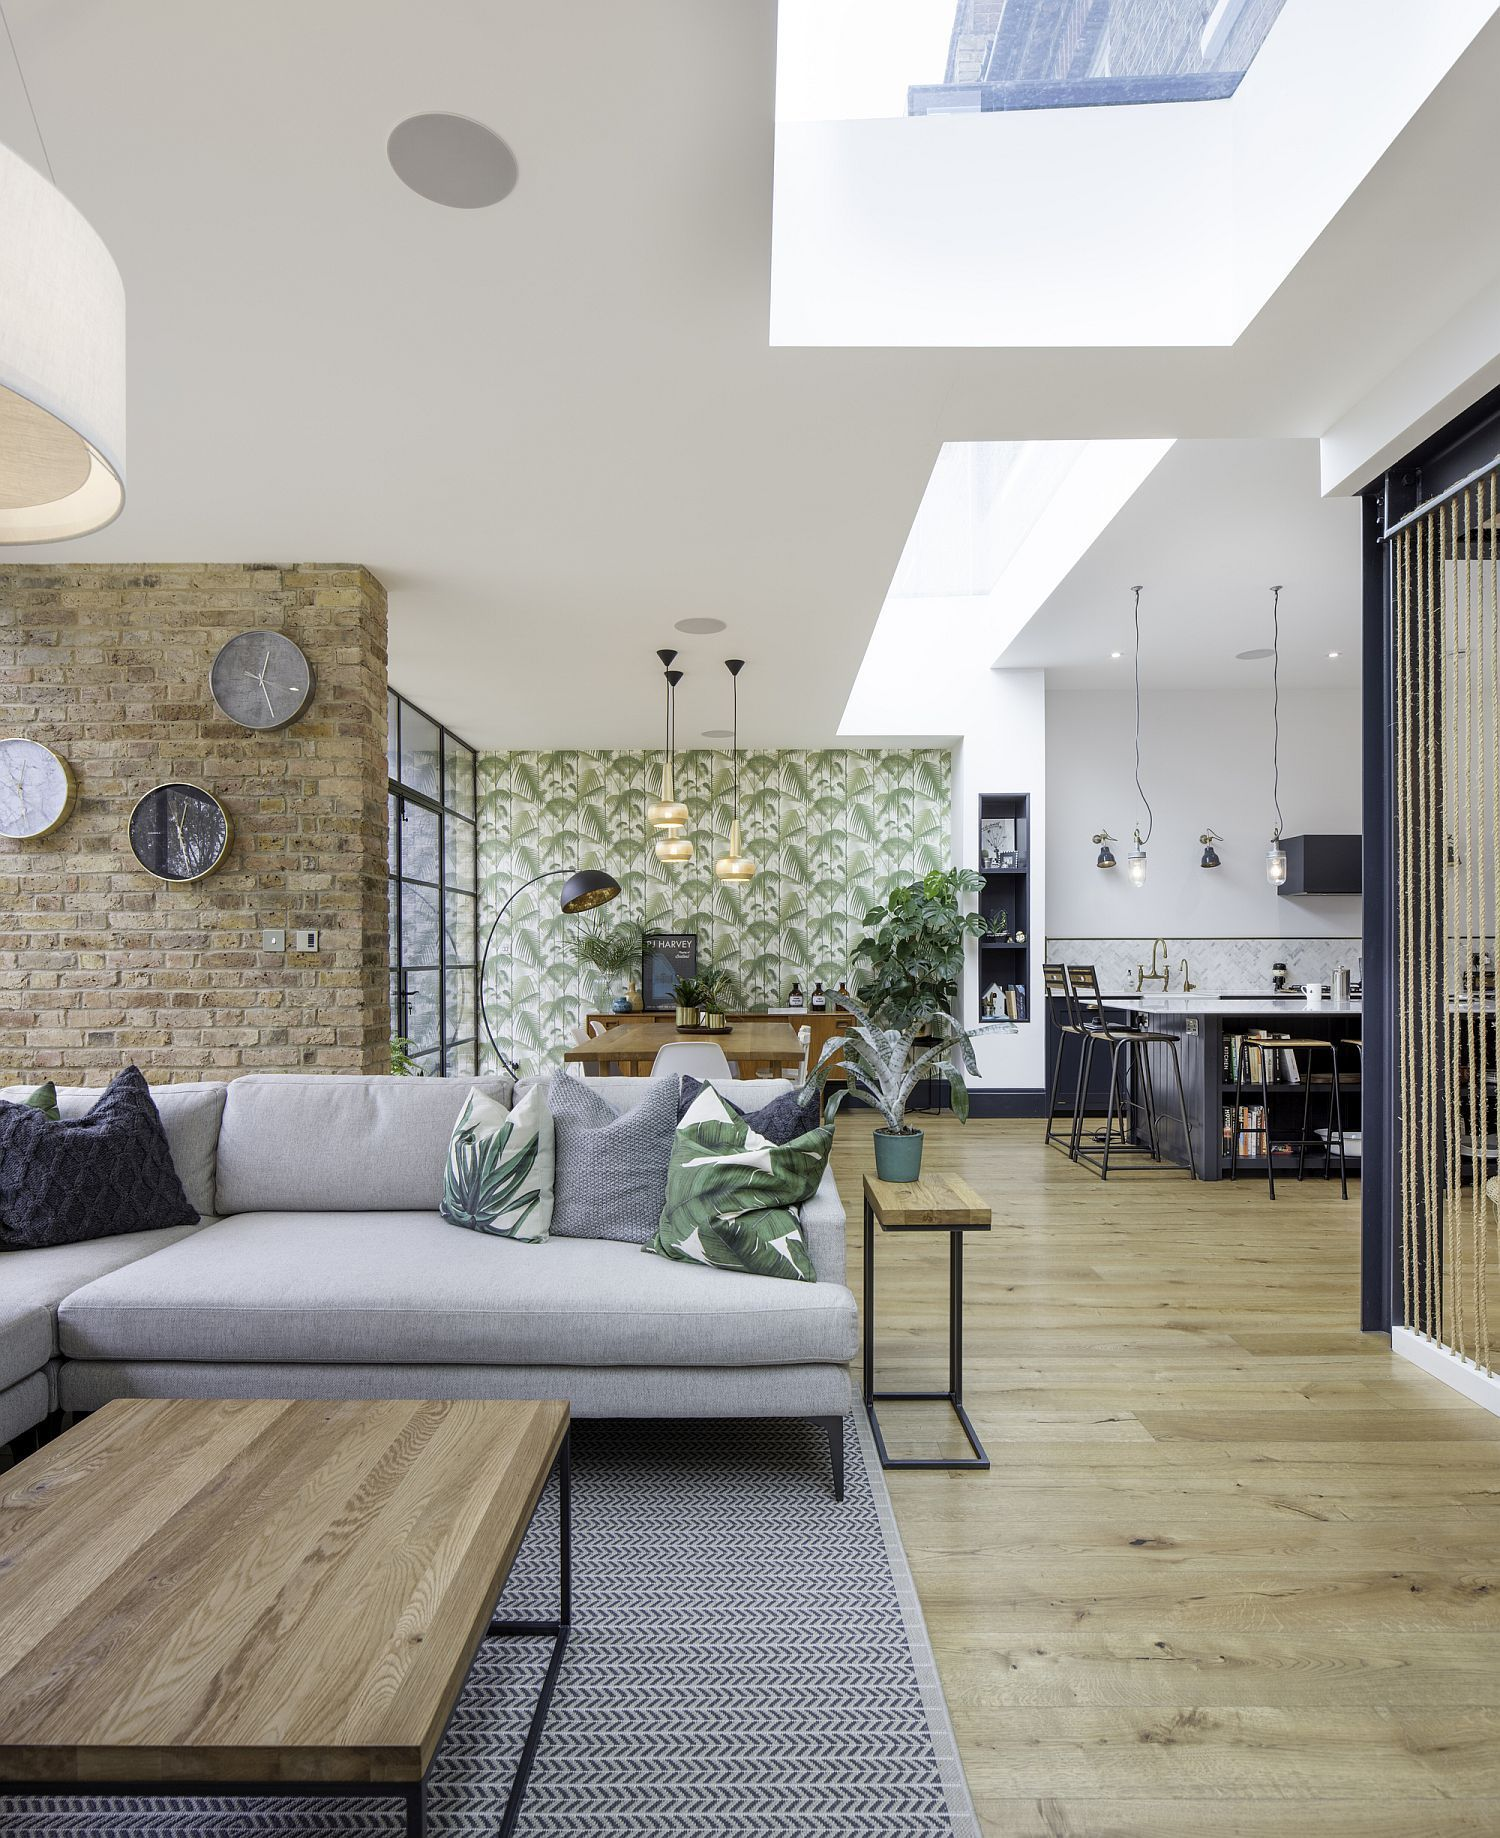 Open Plan Lower Level Living Area Of Tactile House In Dulwich England In 2020 Luxury Living Room Design Home Decor Room Design